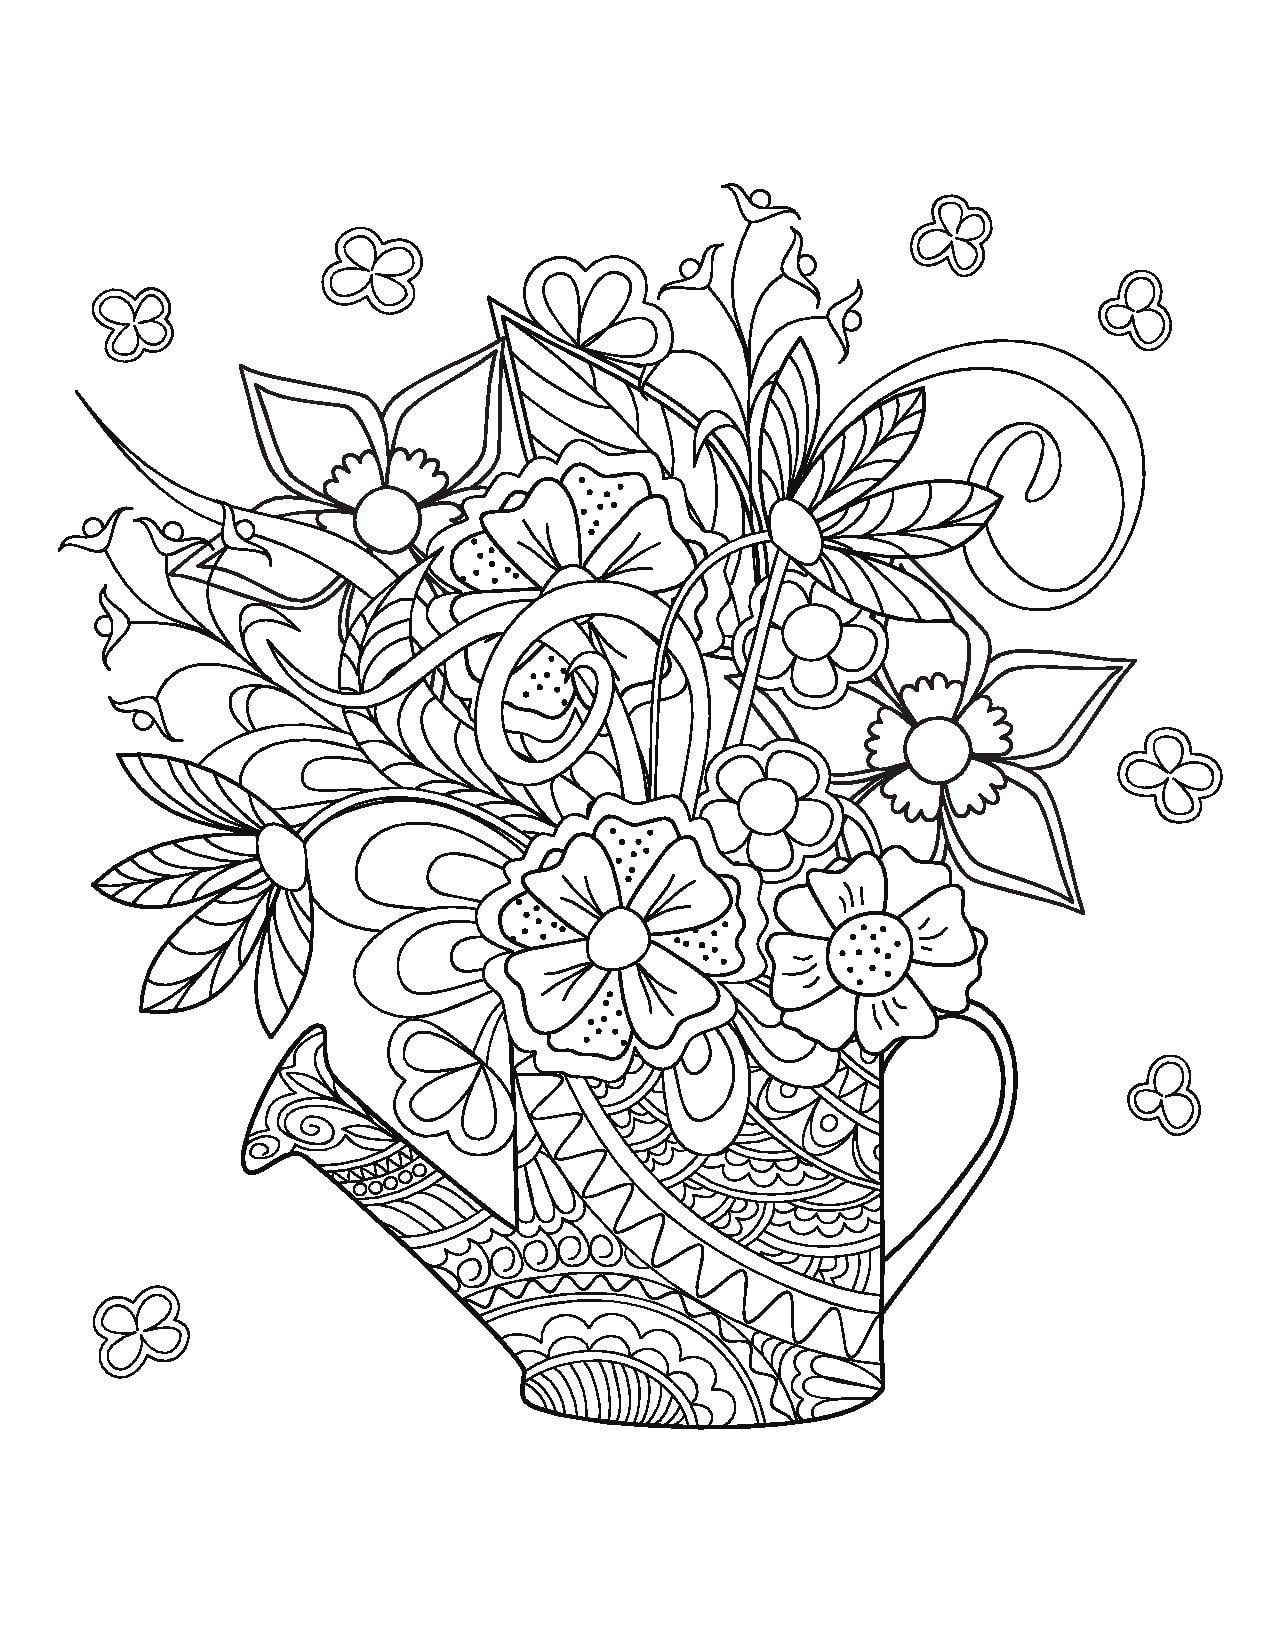 Adult Coloring For The Bride To Be Live Your Life In Color Series